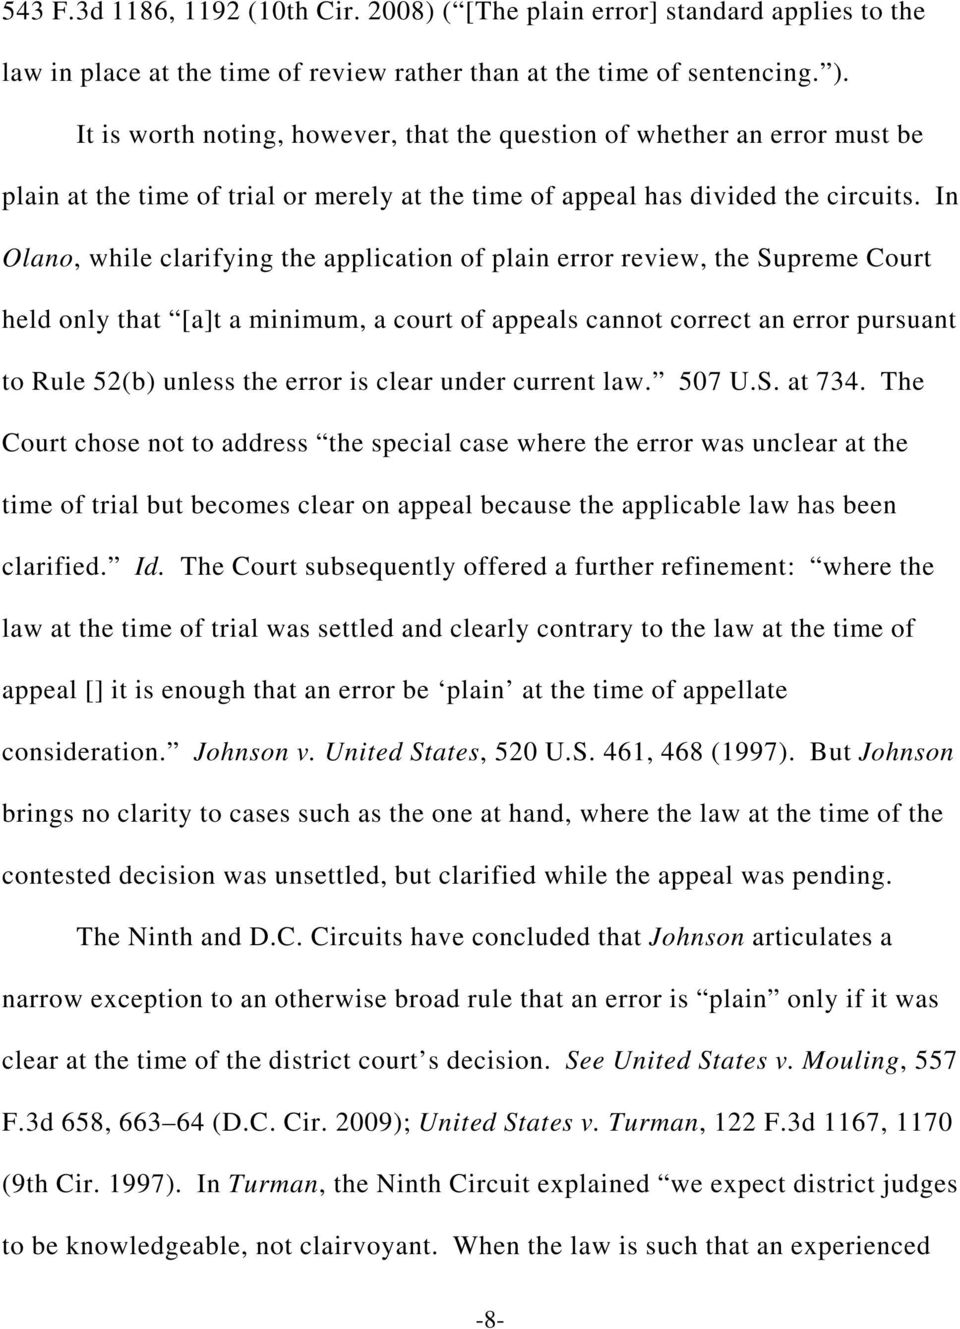 In Olano, while clarifying the application of plain error review, the Supreme Court held only that [a]t a minimum, a court of appeals cannot correct an error pursuant to Rule 52(b) unless the error